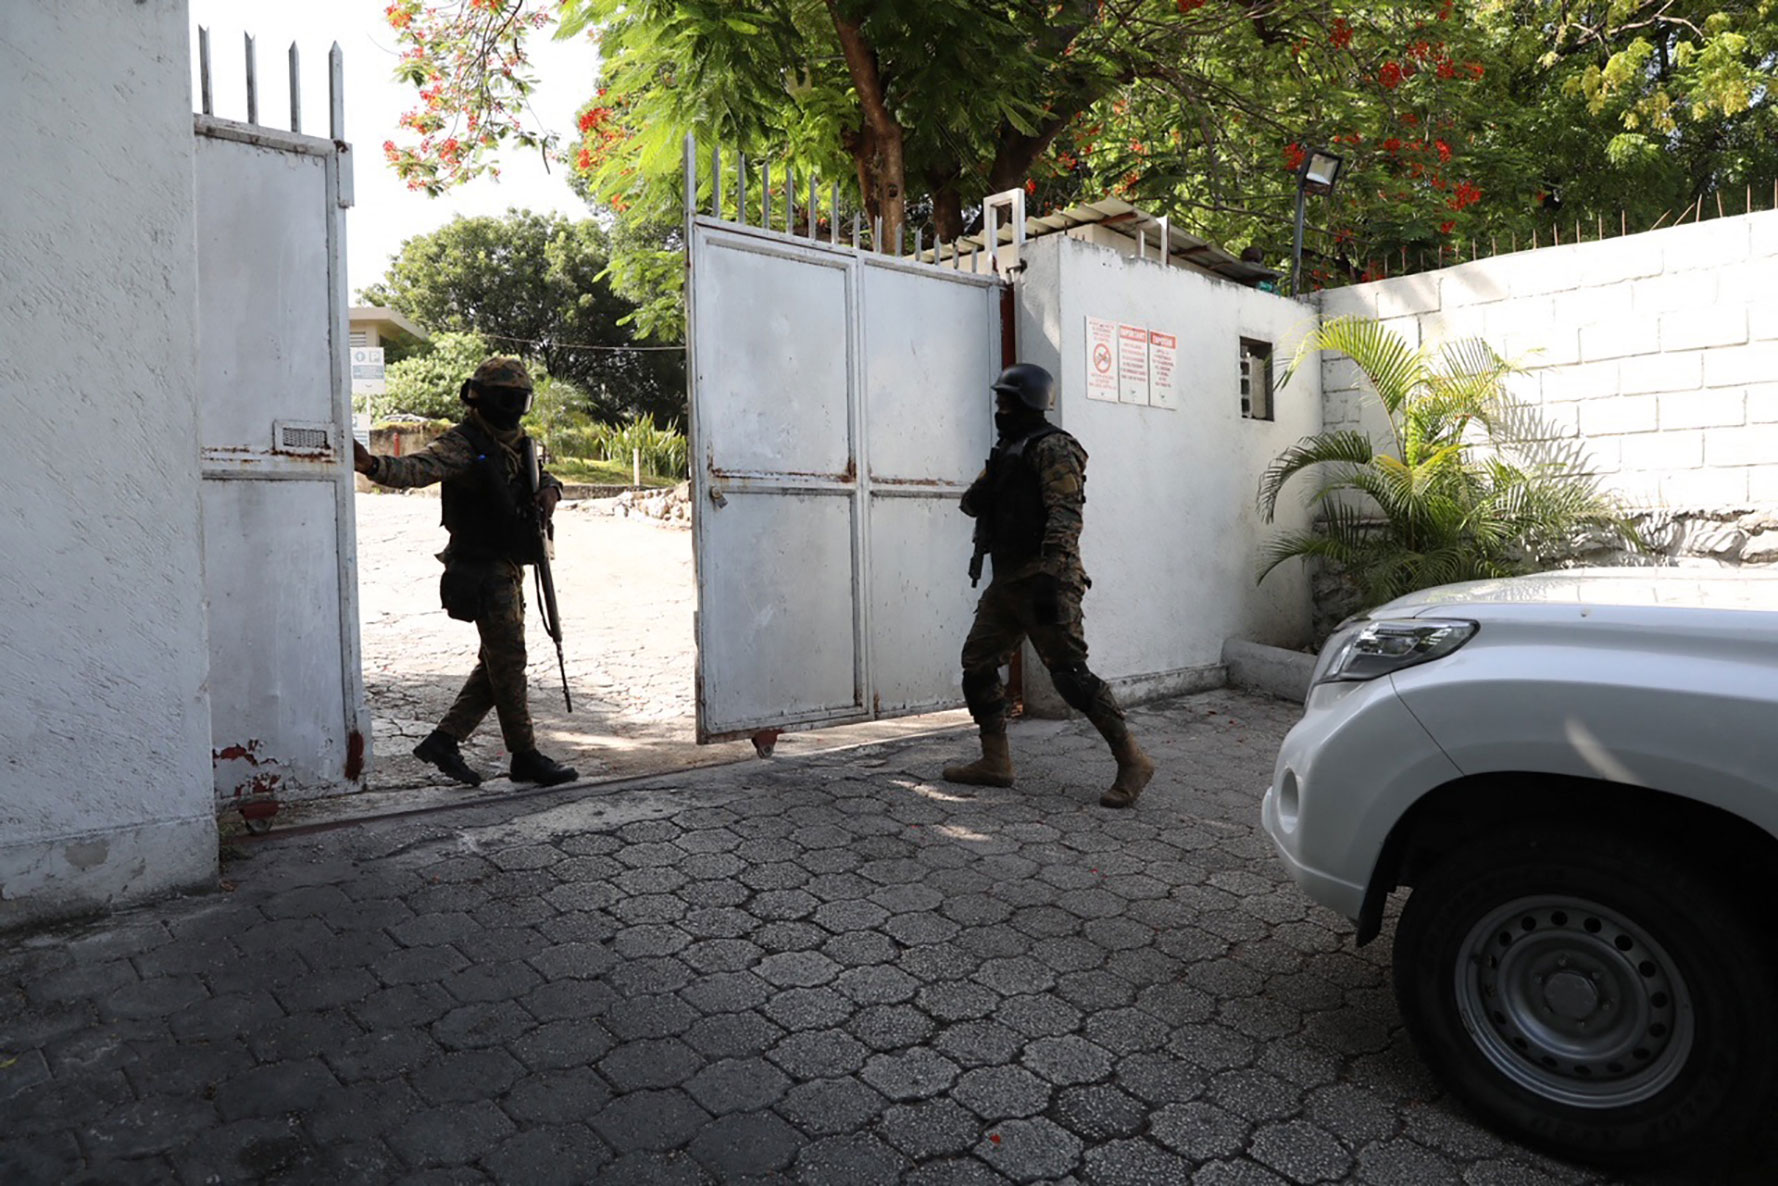 Members of the military are seen near the hospital where Haitian first lady Martine Moise was taken on July 7.